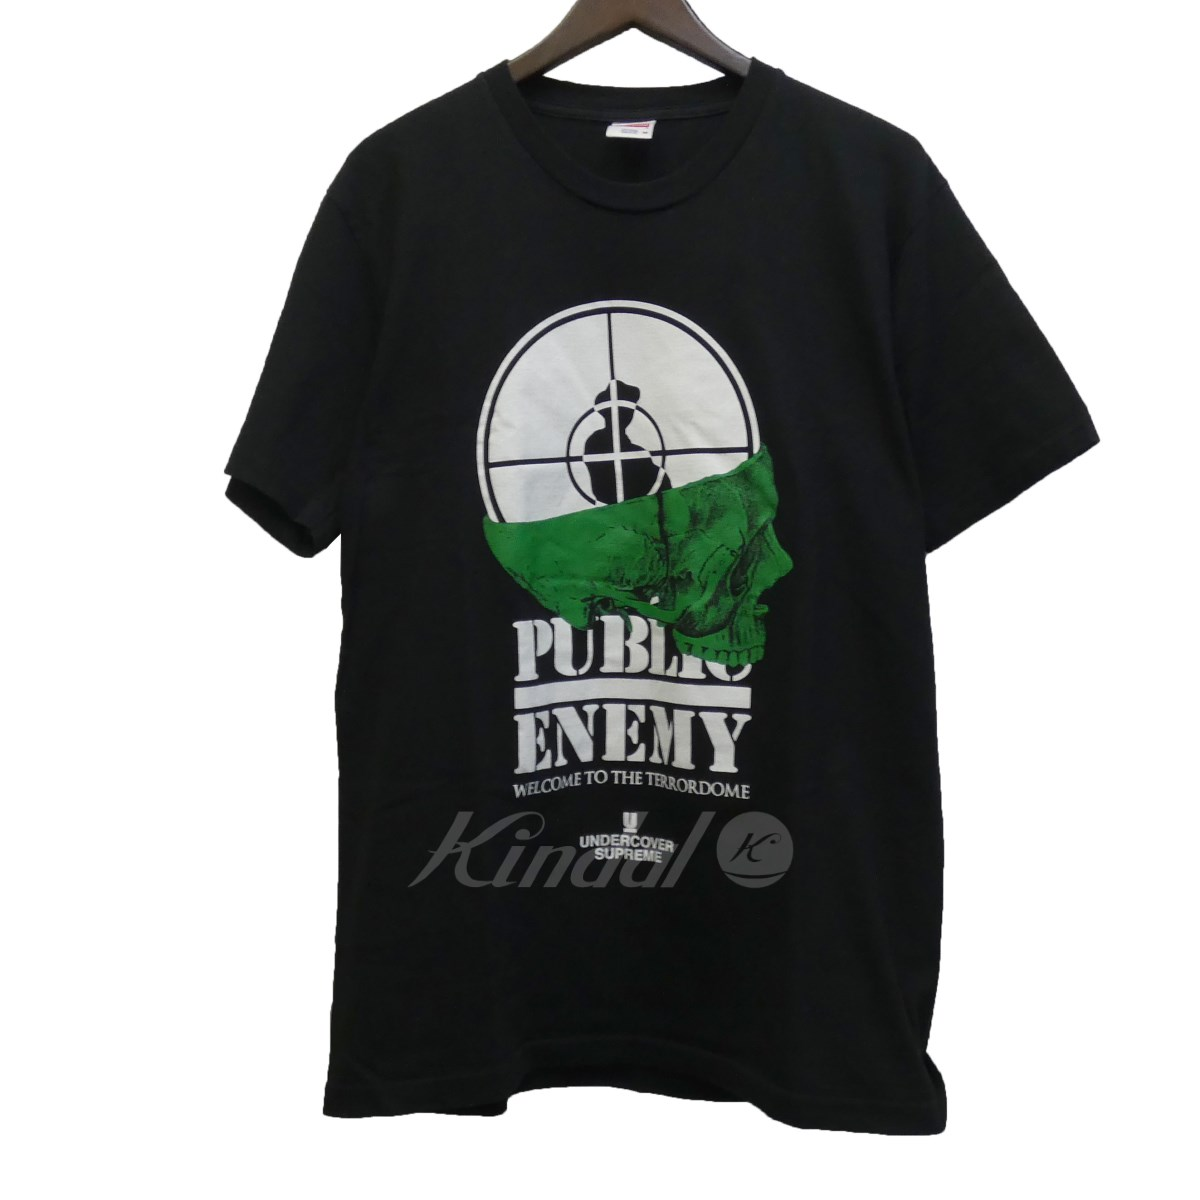 【中古】SUPREME×UNDER COVER 18SS 「Public Enemy Terrordome Tee」パブリックエネミーTシャツ 【送料無料】 【097287】 【KIND1550】